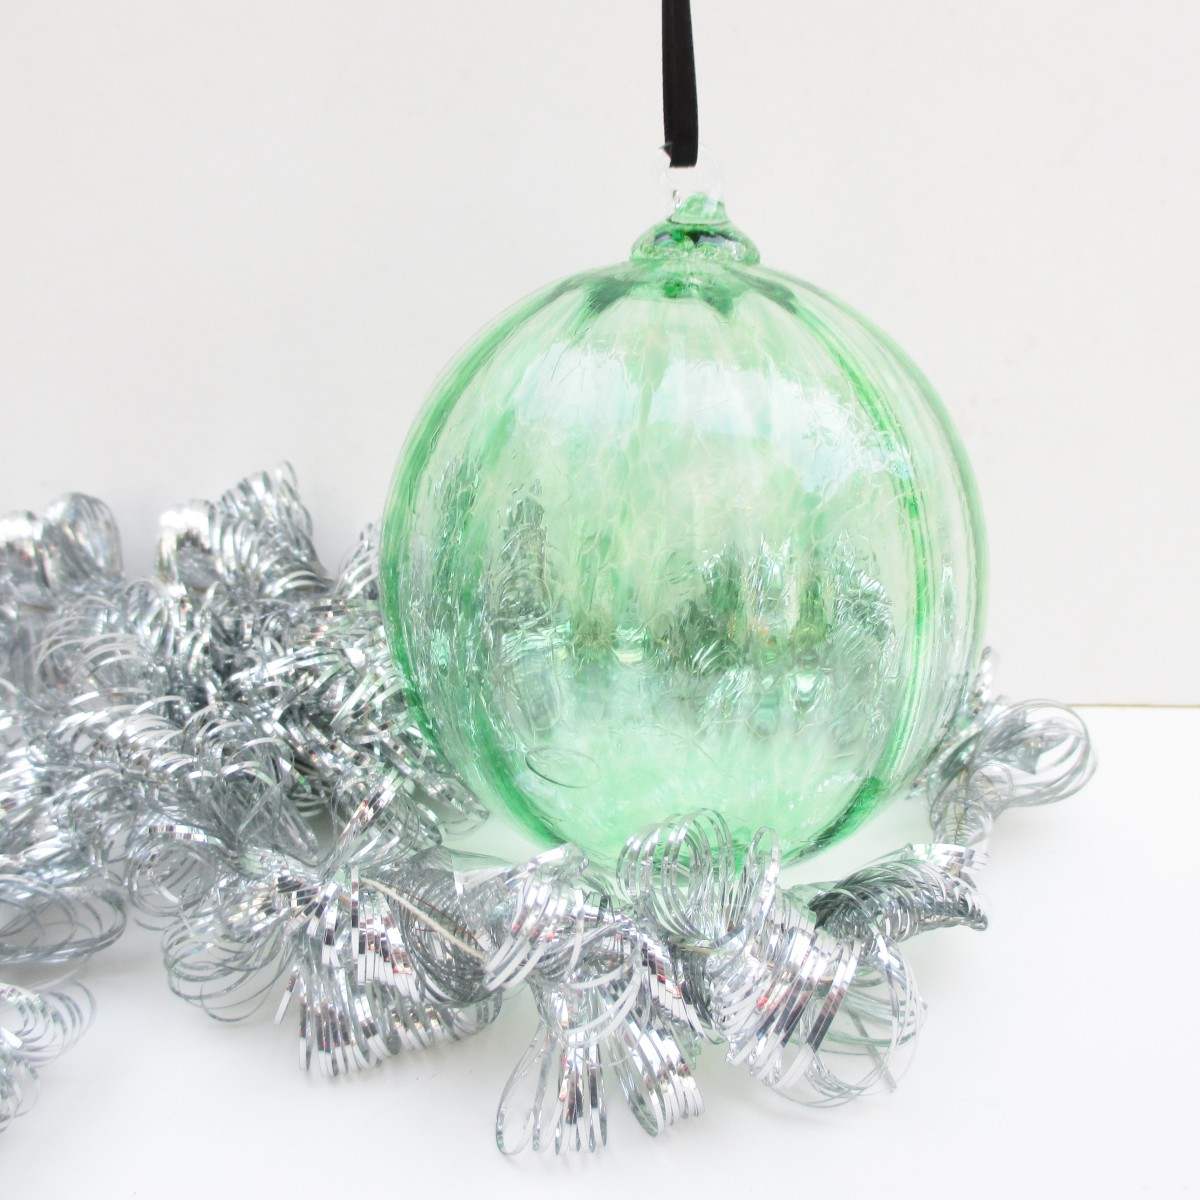 blown glass ornament